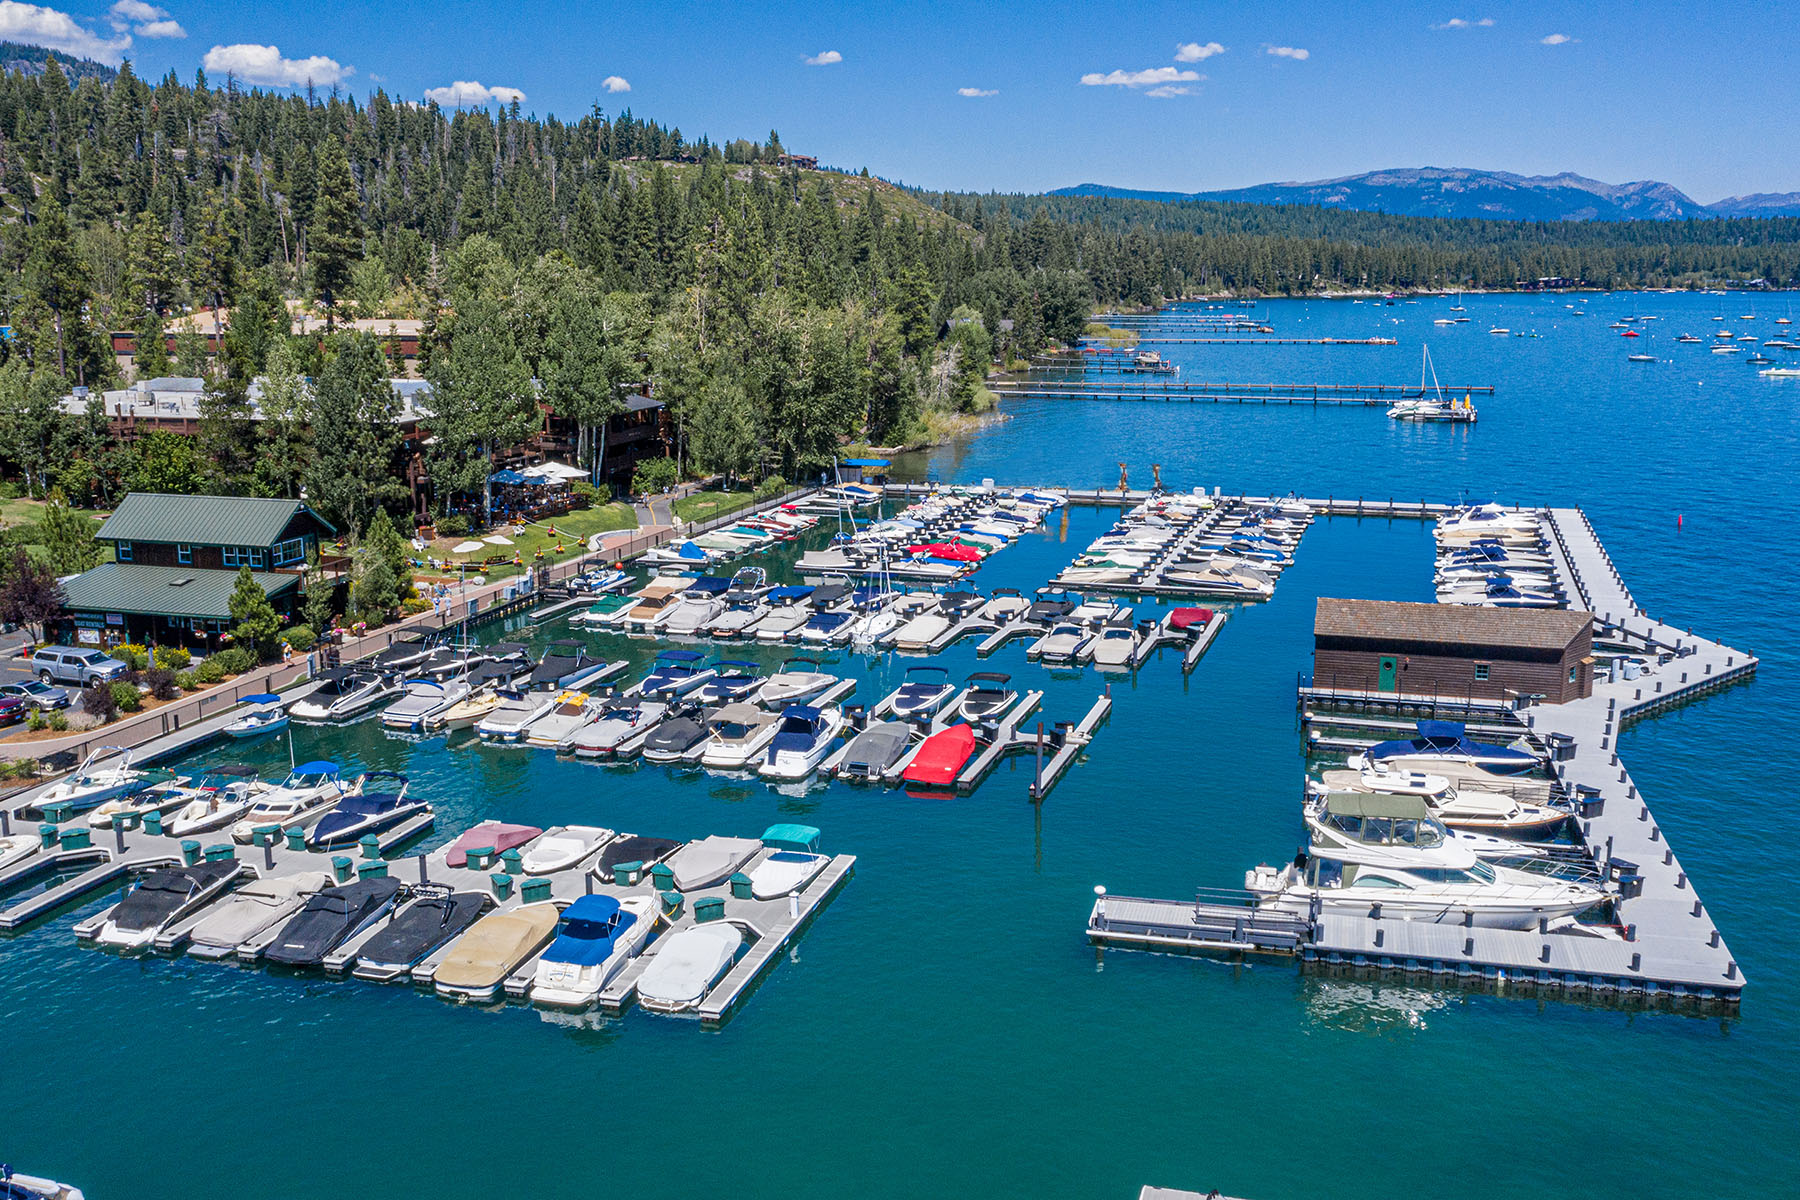 por un Venta en 700 N Lake Blvd #E-16, Tahoe City, CA 96145 700 N Lake Blvd #E-16 Tahoe City, California 96145 Estados Unidos